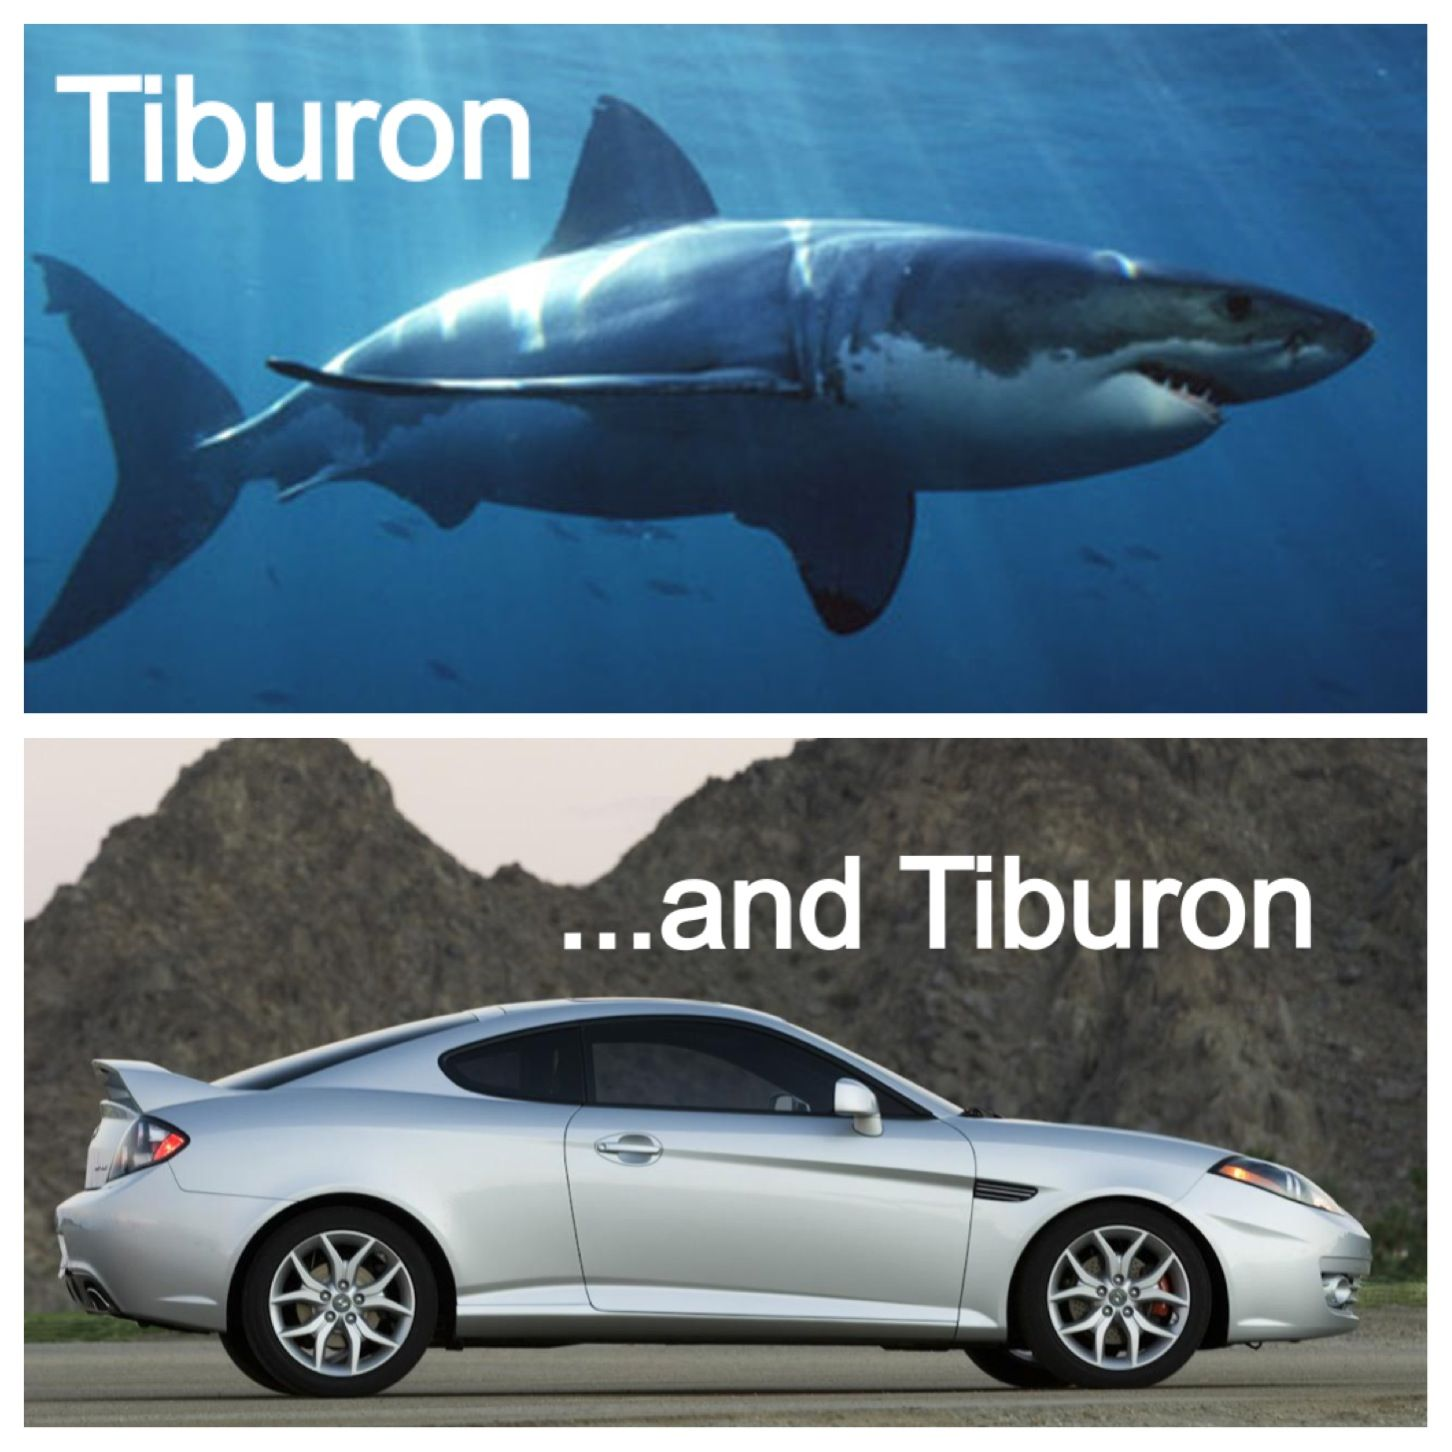 In light of Shark Week ...    #Hyundai #SharkWeek #Tiburon